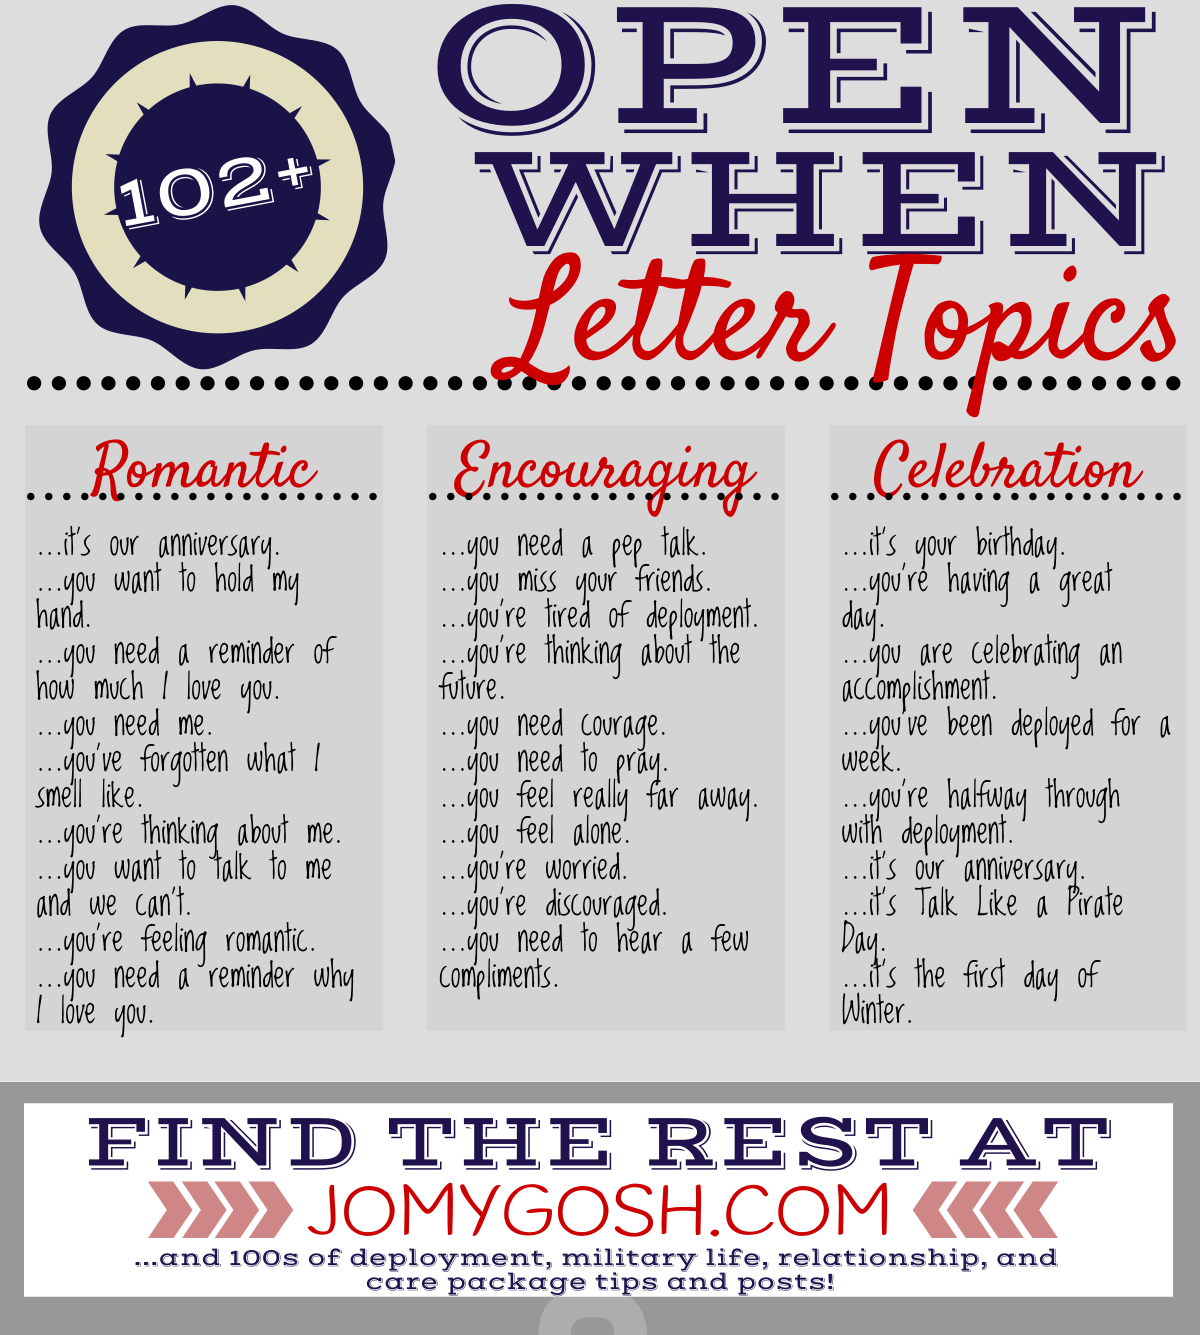 Open When Letter Topics  Printing Easy And Gift